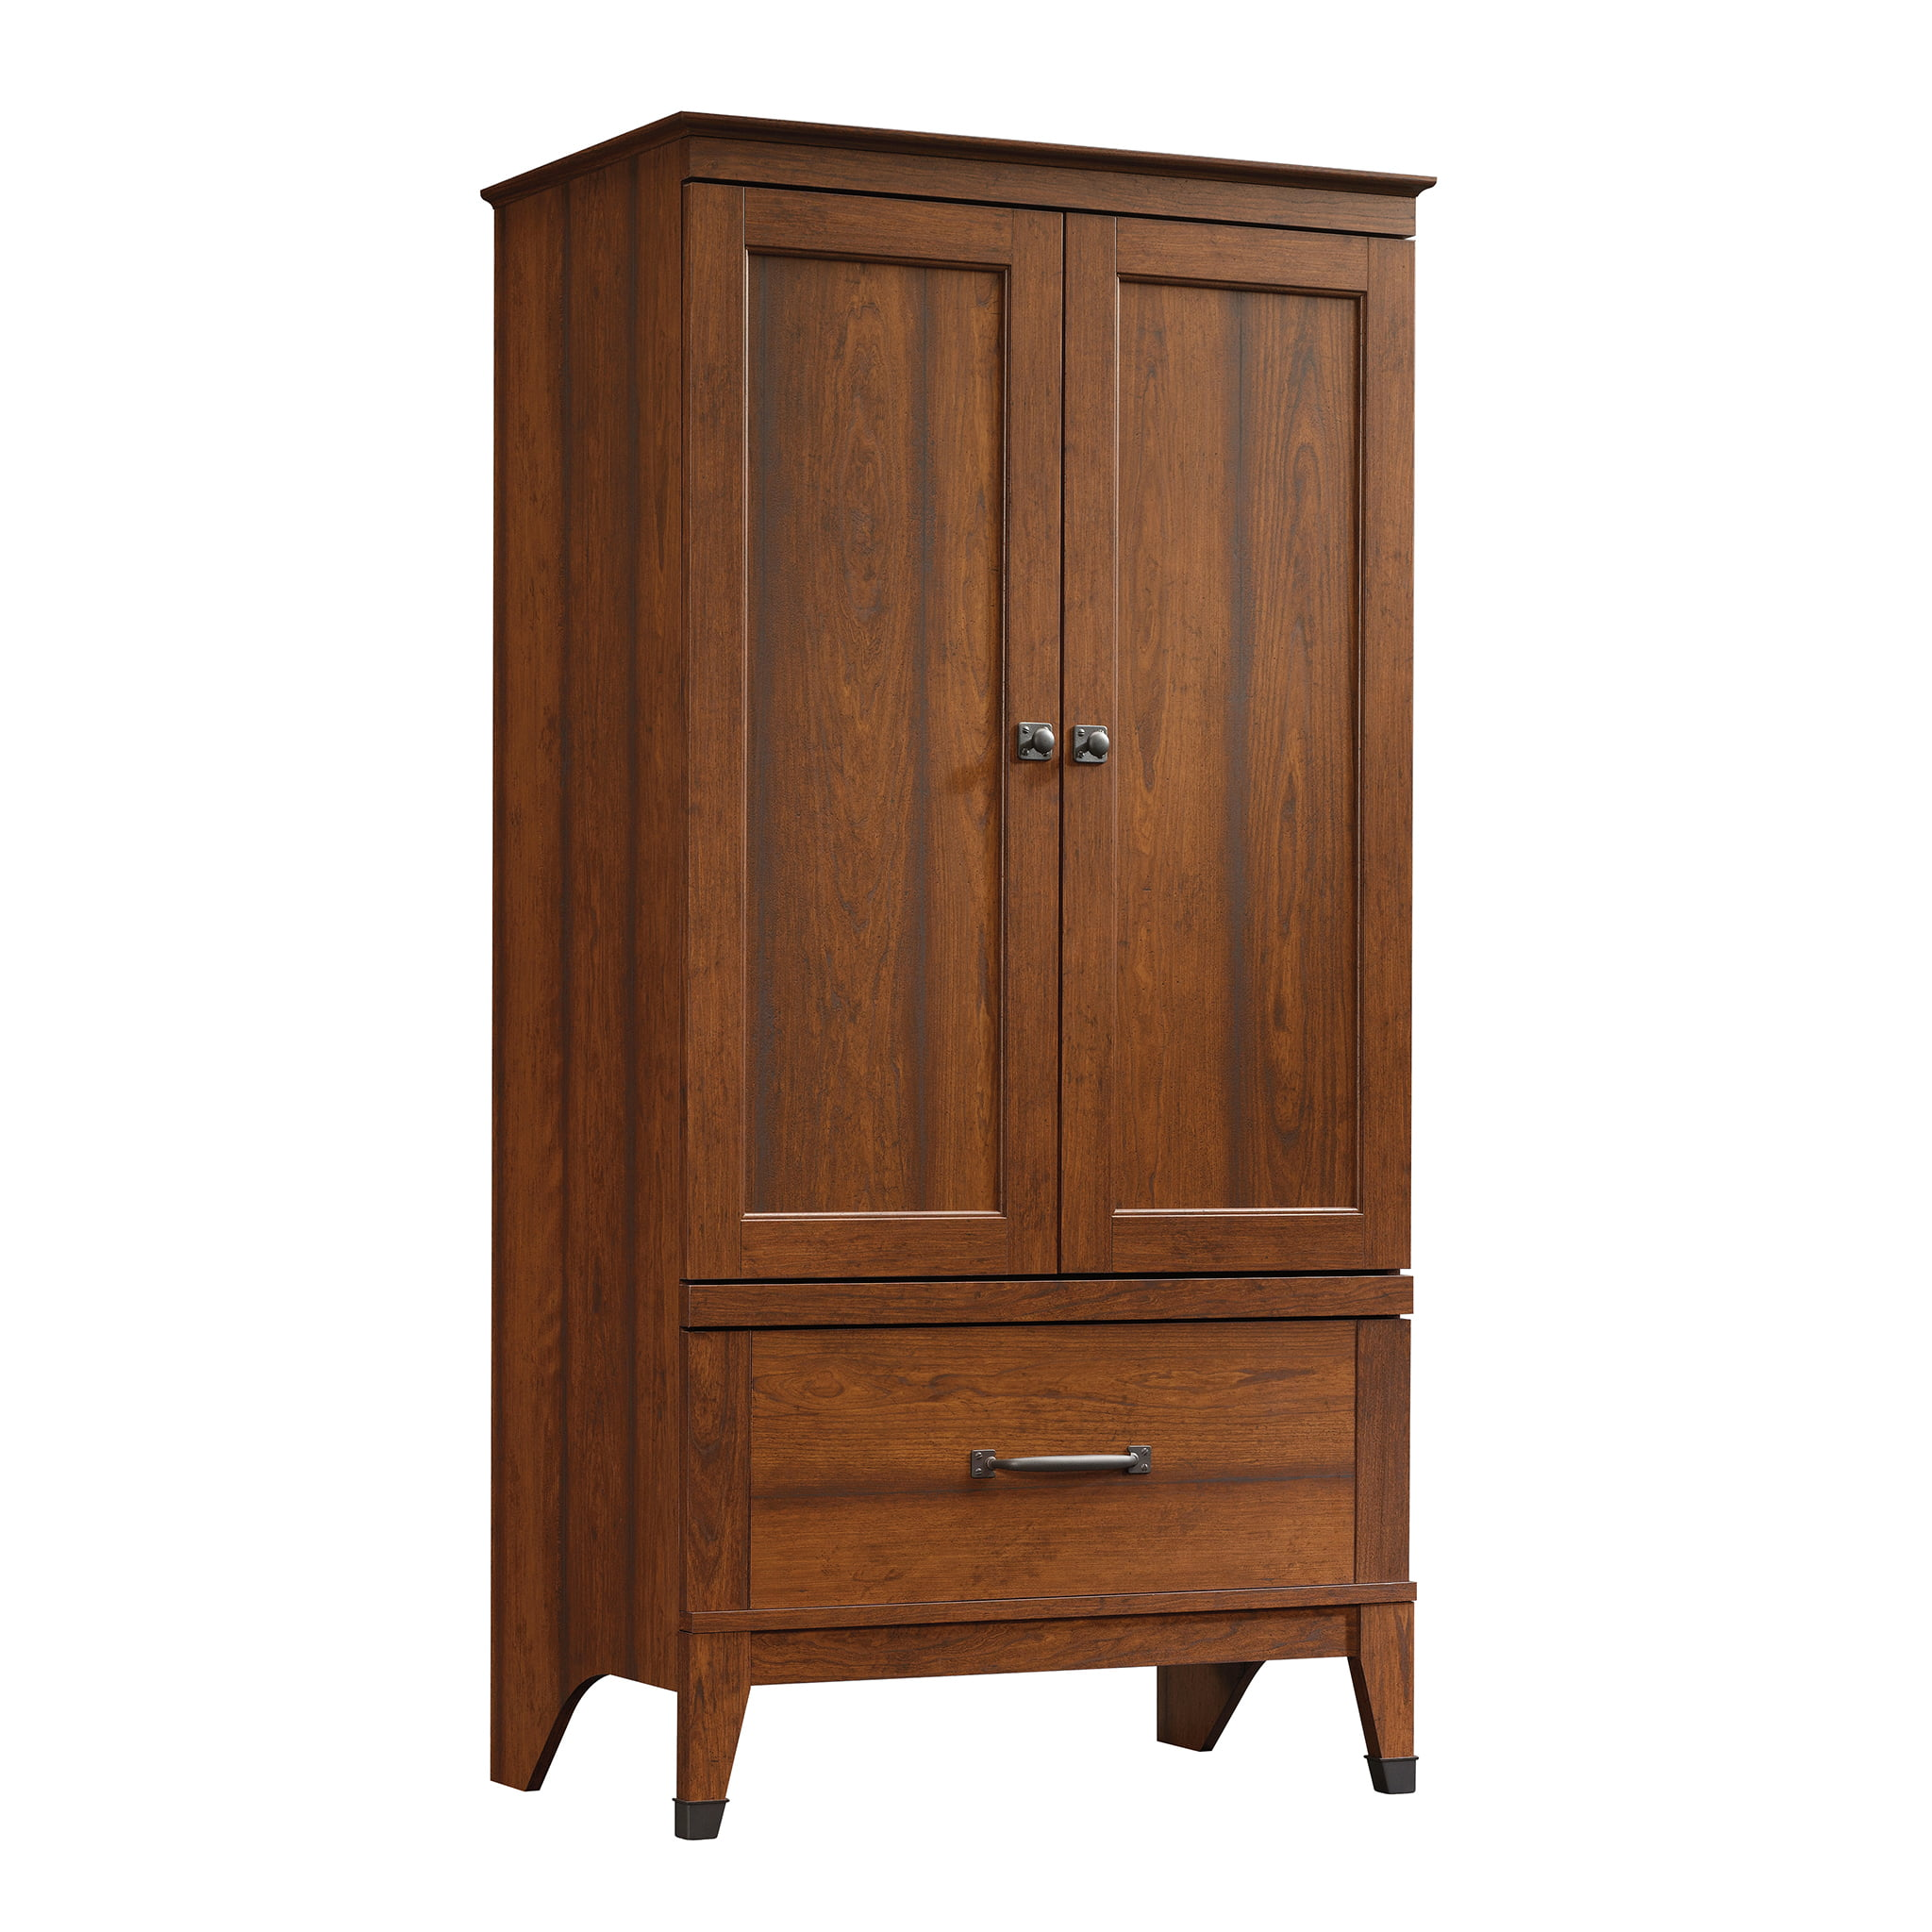 Sauder Carson Forge Armoire, Washington Cherry Finish by Sauder Woodworking